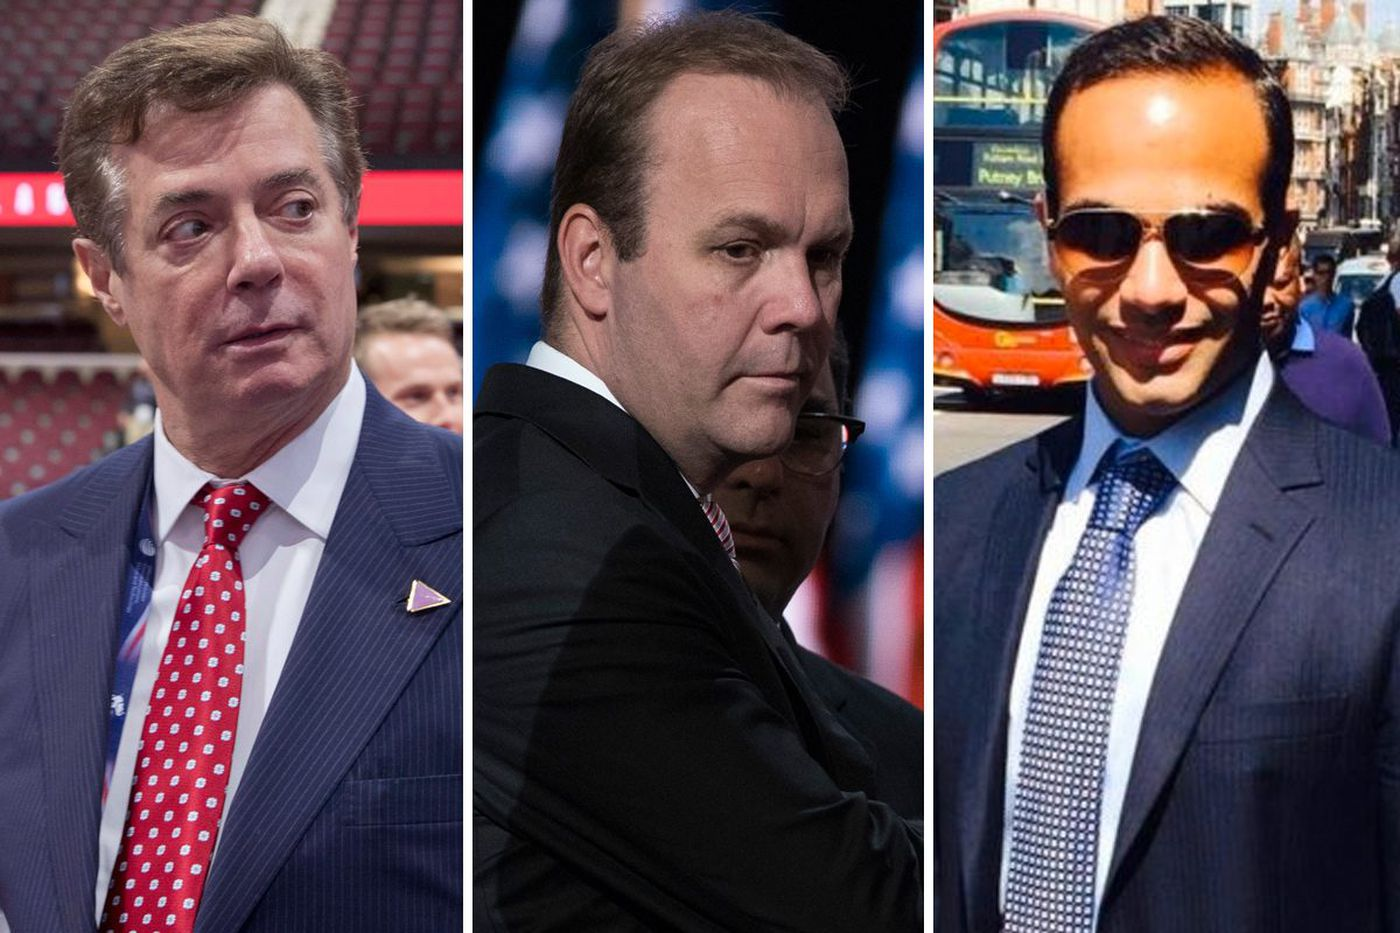 3 Trump aides, including former campaign chairman, charged in Russia investigation